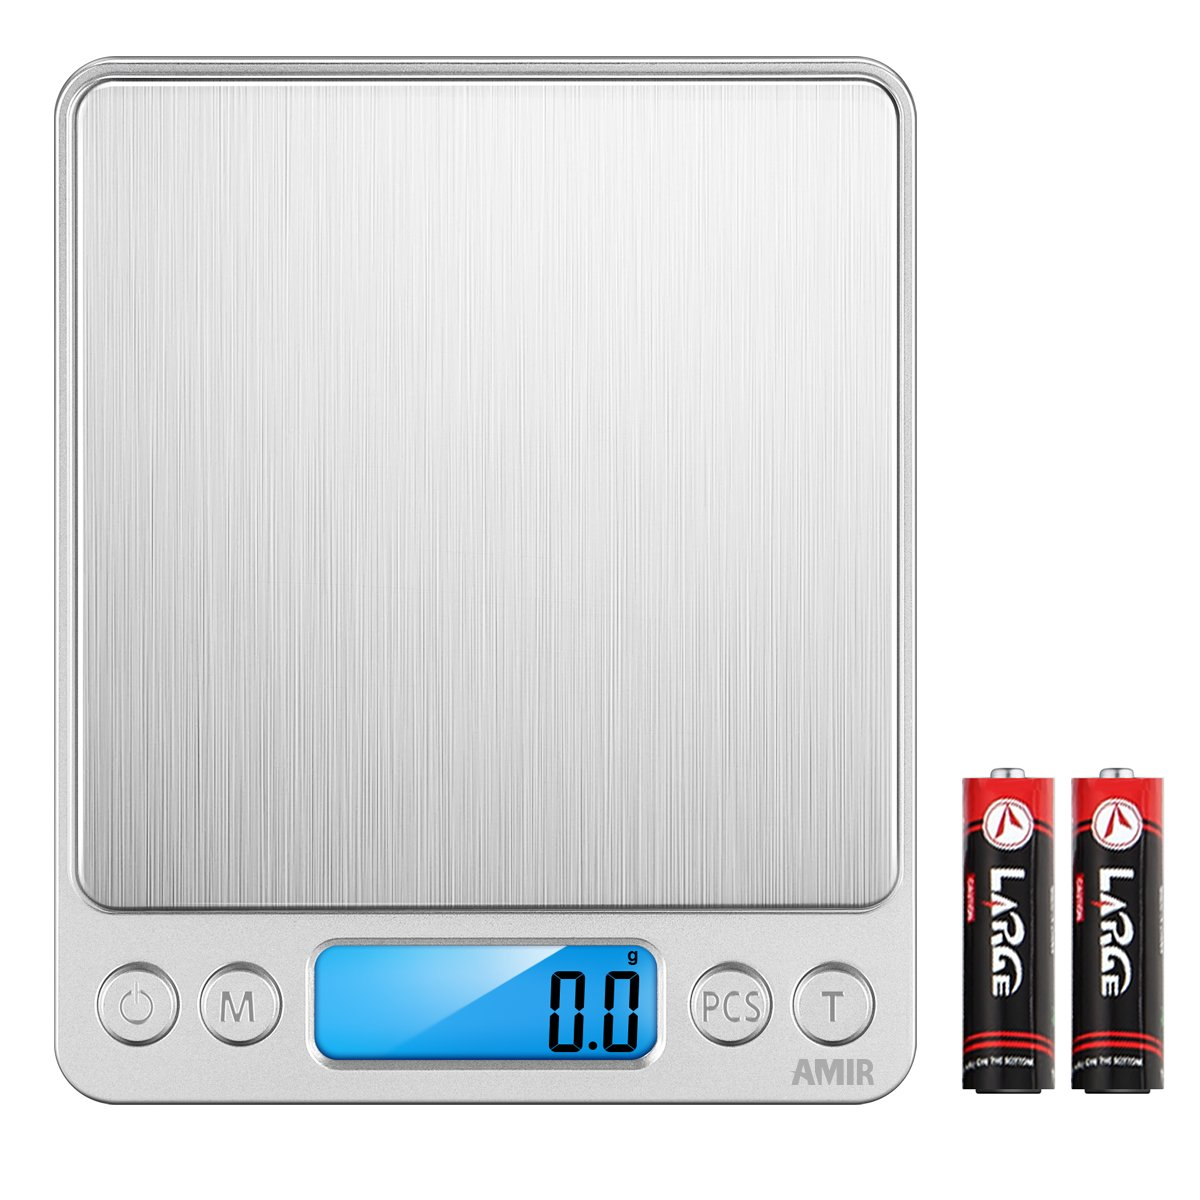 AMIR Digital Kitchen Scale, 3000g 0.01oz/ 0.1g Pocket Cooking Scale, Mini Food Scale, Pro Electronic Jewelry Scale with Back-Lit LCD Display, Tare & PCS Functions, Stainless Steel, Batteries Included by AMIR